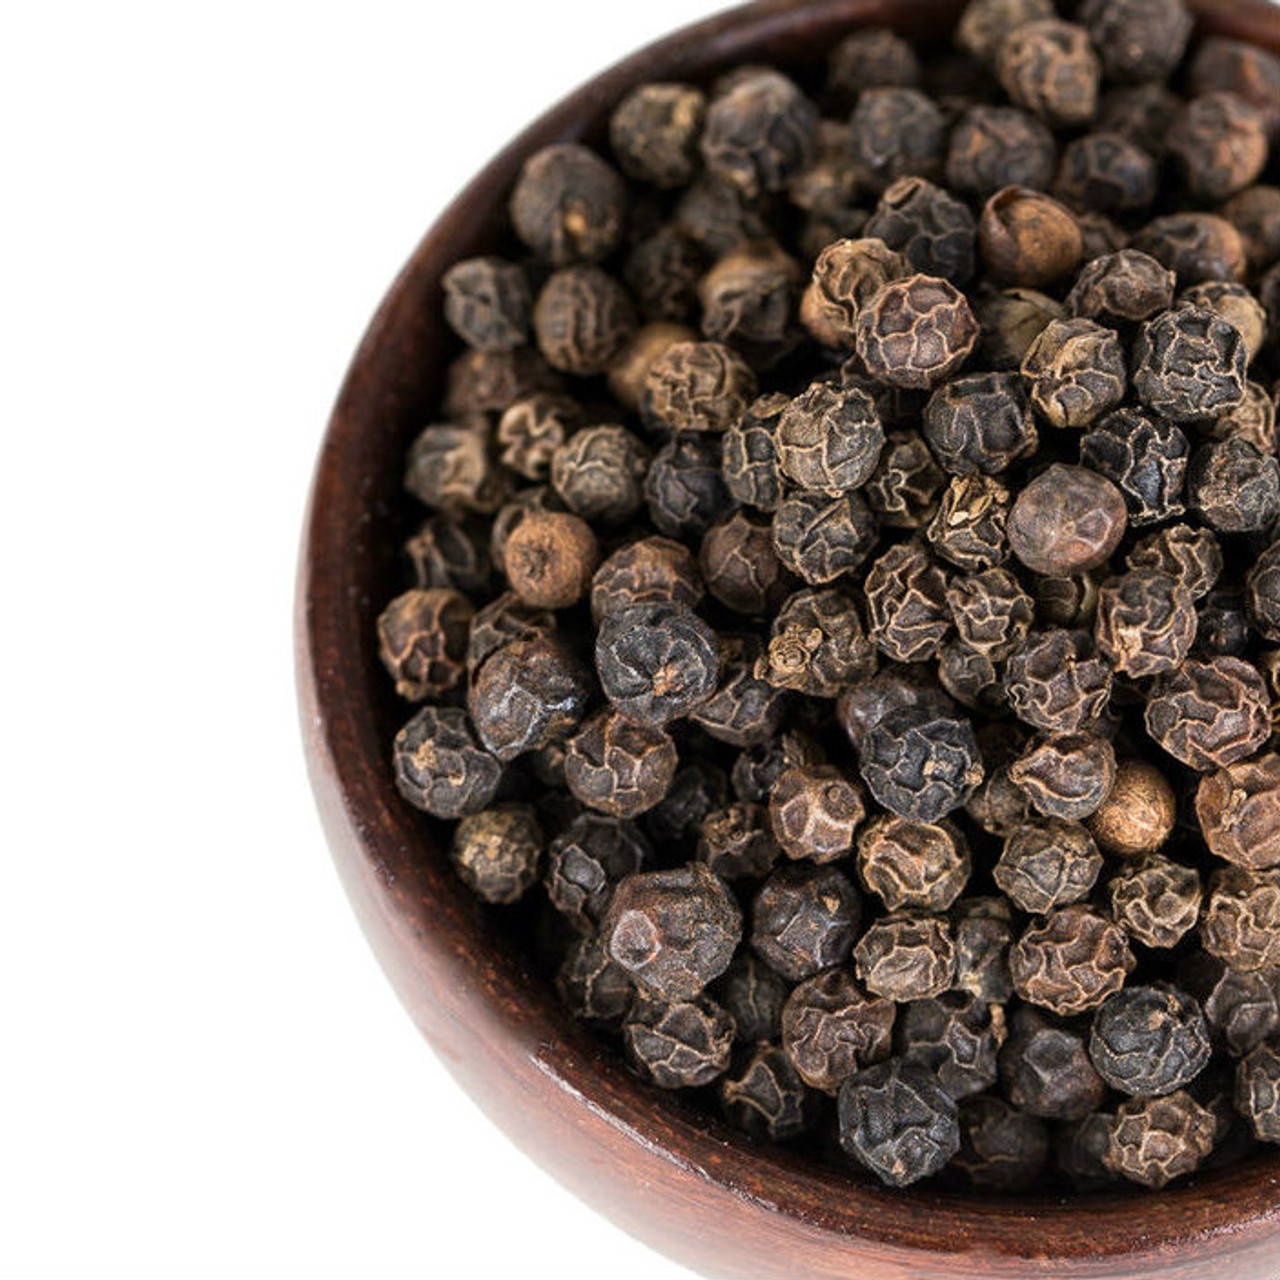 Our Hickory Smoked Black Peppercorns are naturally finished over hickory wood, producing a smooth, robust, smoky flavor and mouthwatering aroma that is a delicious complement to many dishes. Use as a finishing pepper or add to rubs or seasoning blends. Great on grilled meat and vegetables. Add to salsa for smoky kick. Add to Bloody Marys for a subtle twist, or grind and mix with salt and use to rim cocktail glasses. Add to soups and stews during the last minutes of cooking to maximize flavor.